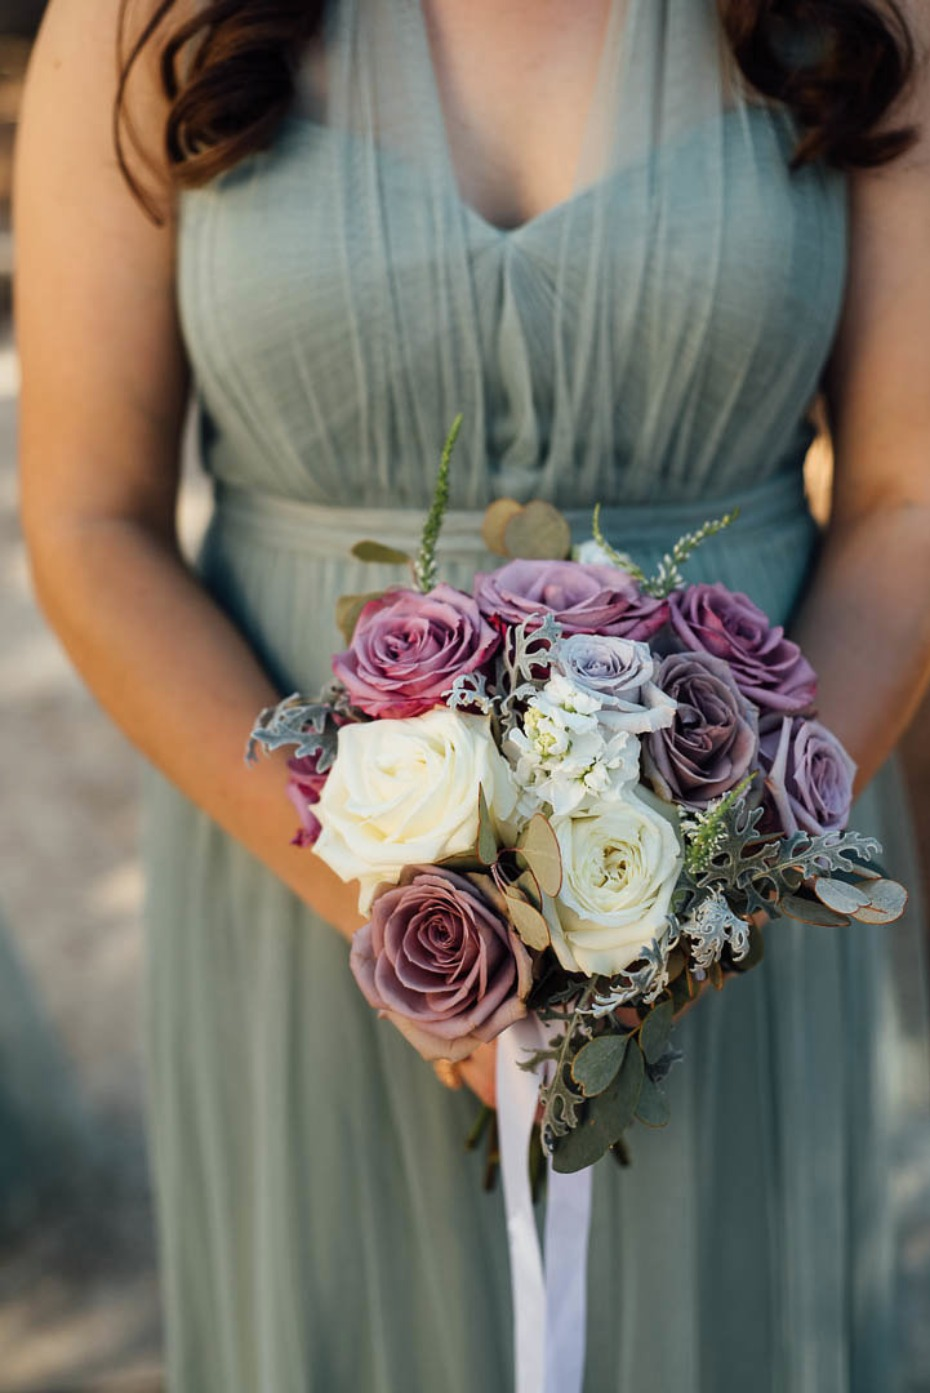 Gorgeous bridesmaid bouquet